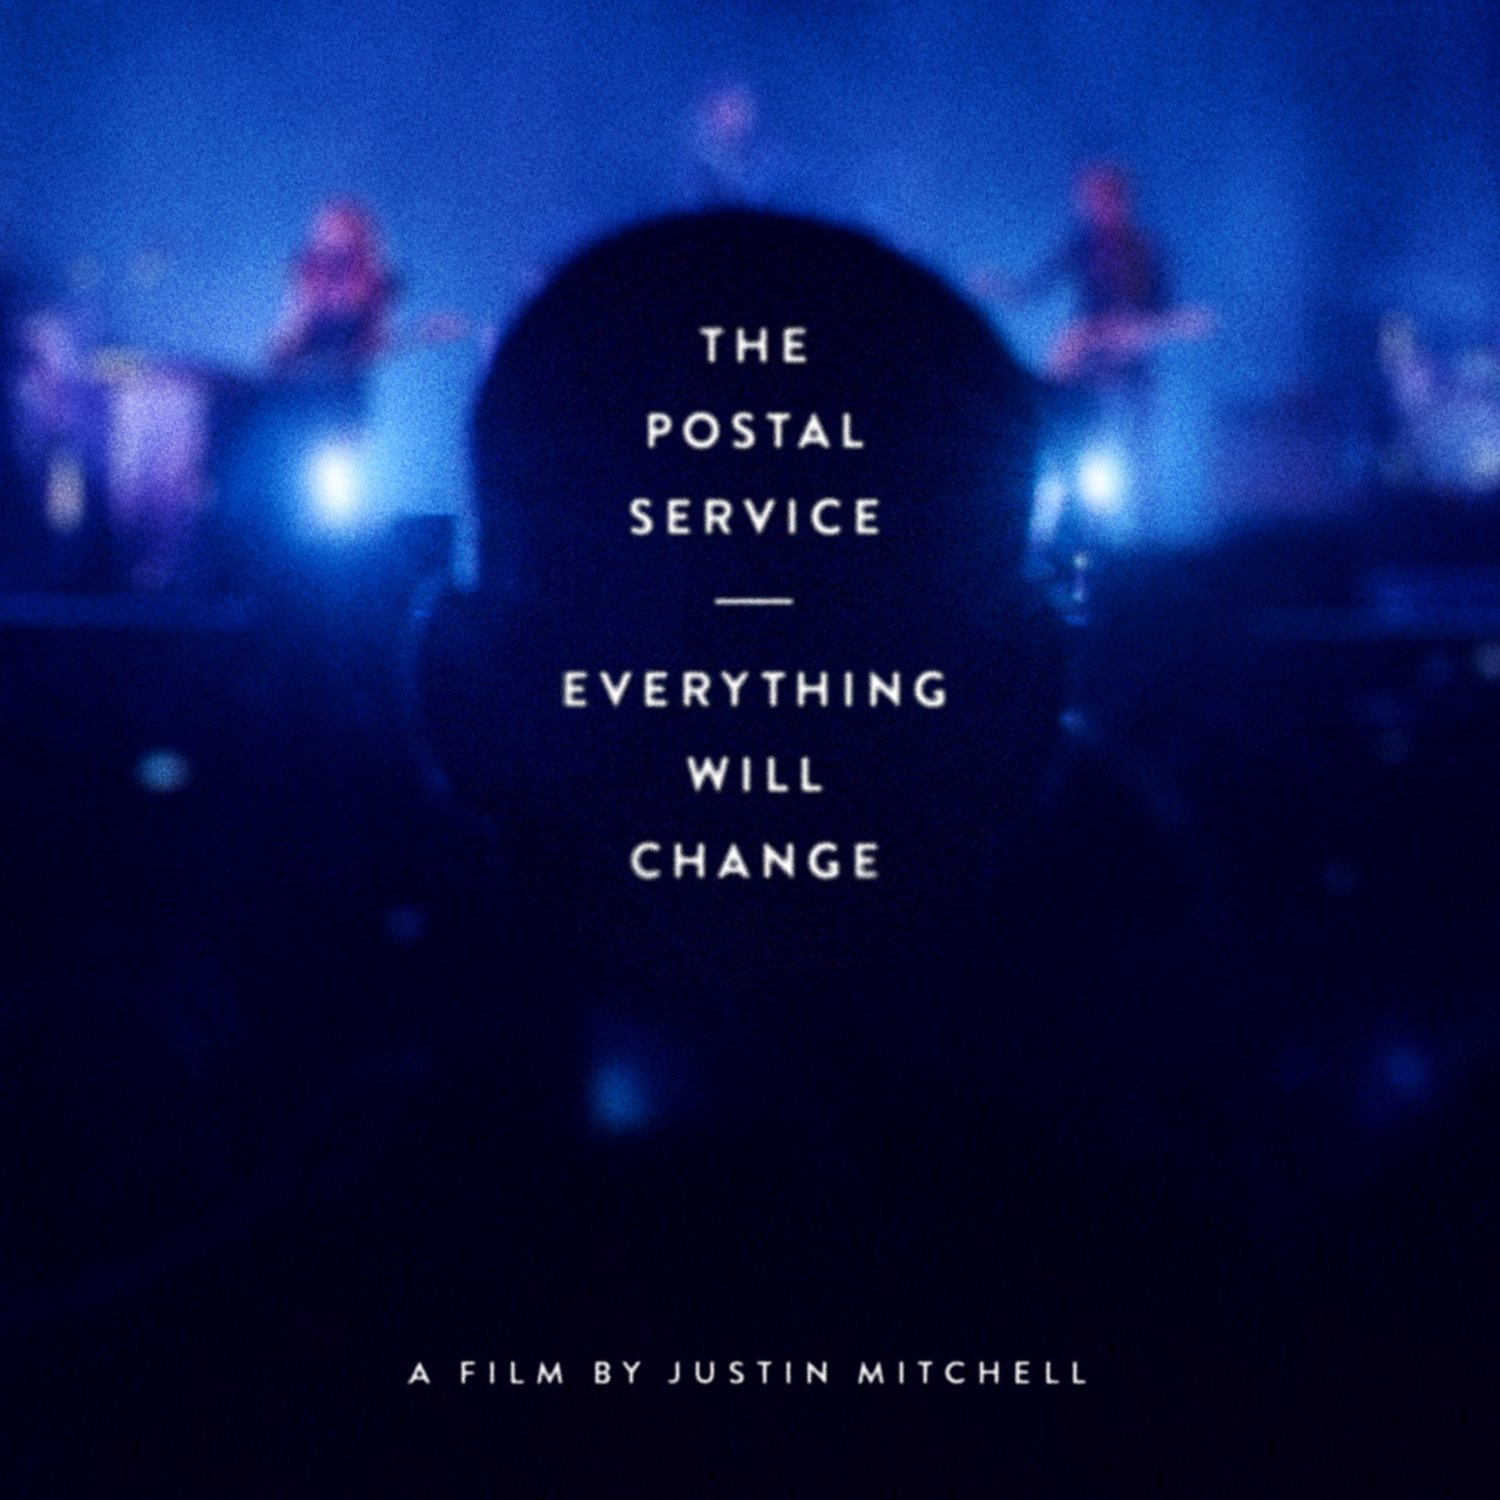 The Postal Service - Everything Will Change [Blu-Ray/DVD]